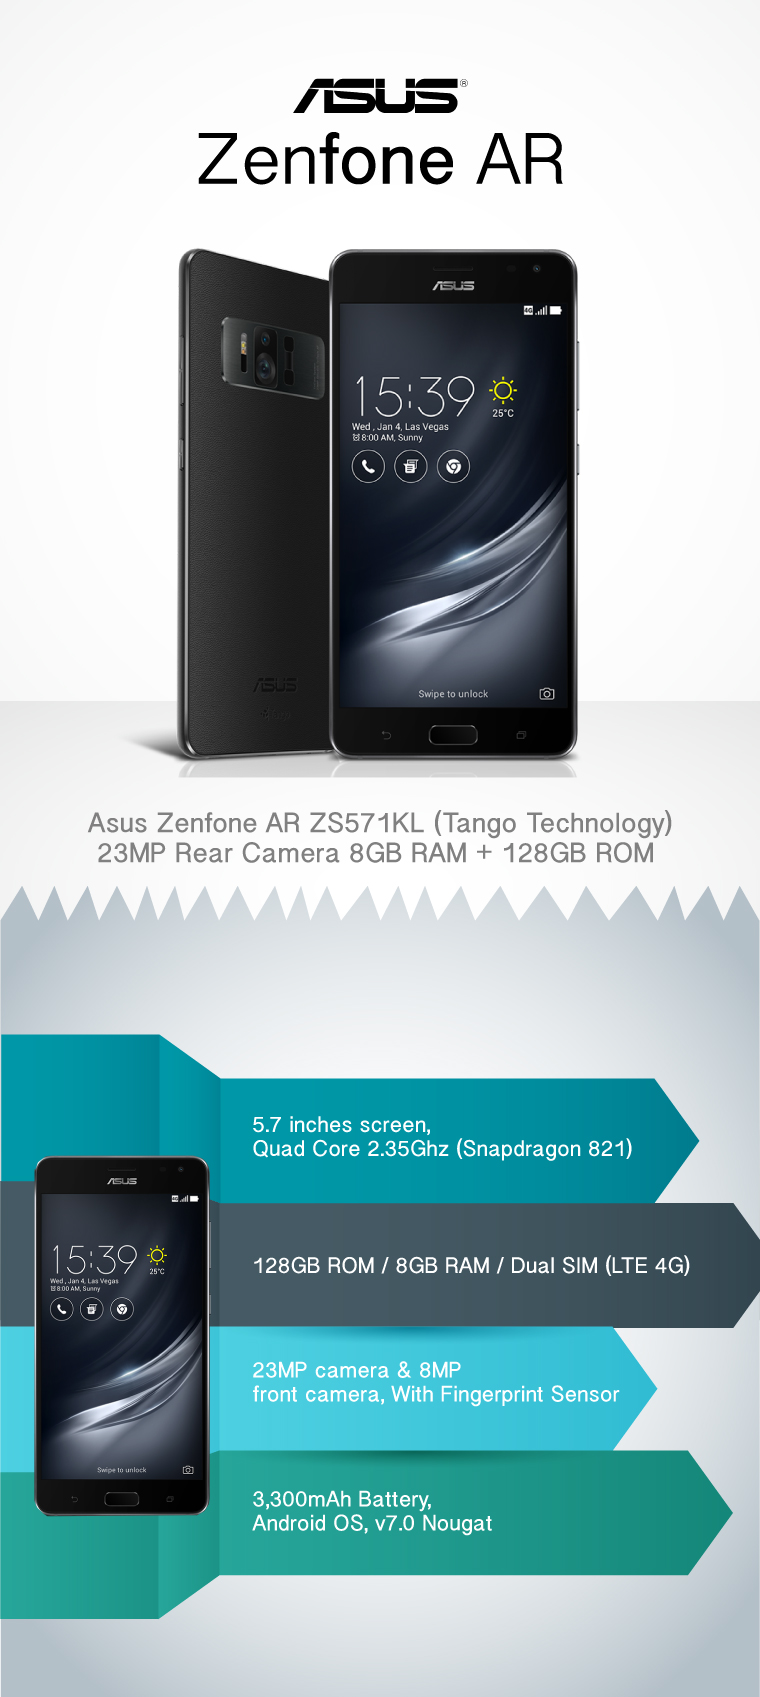 Asus Zenfone Ar 8gb Ram 128gb Rom O End 7 10 2018 6 15 Pm